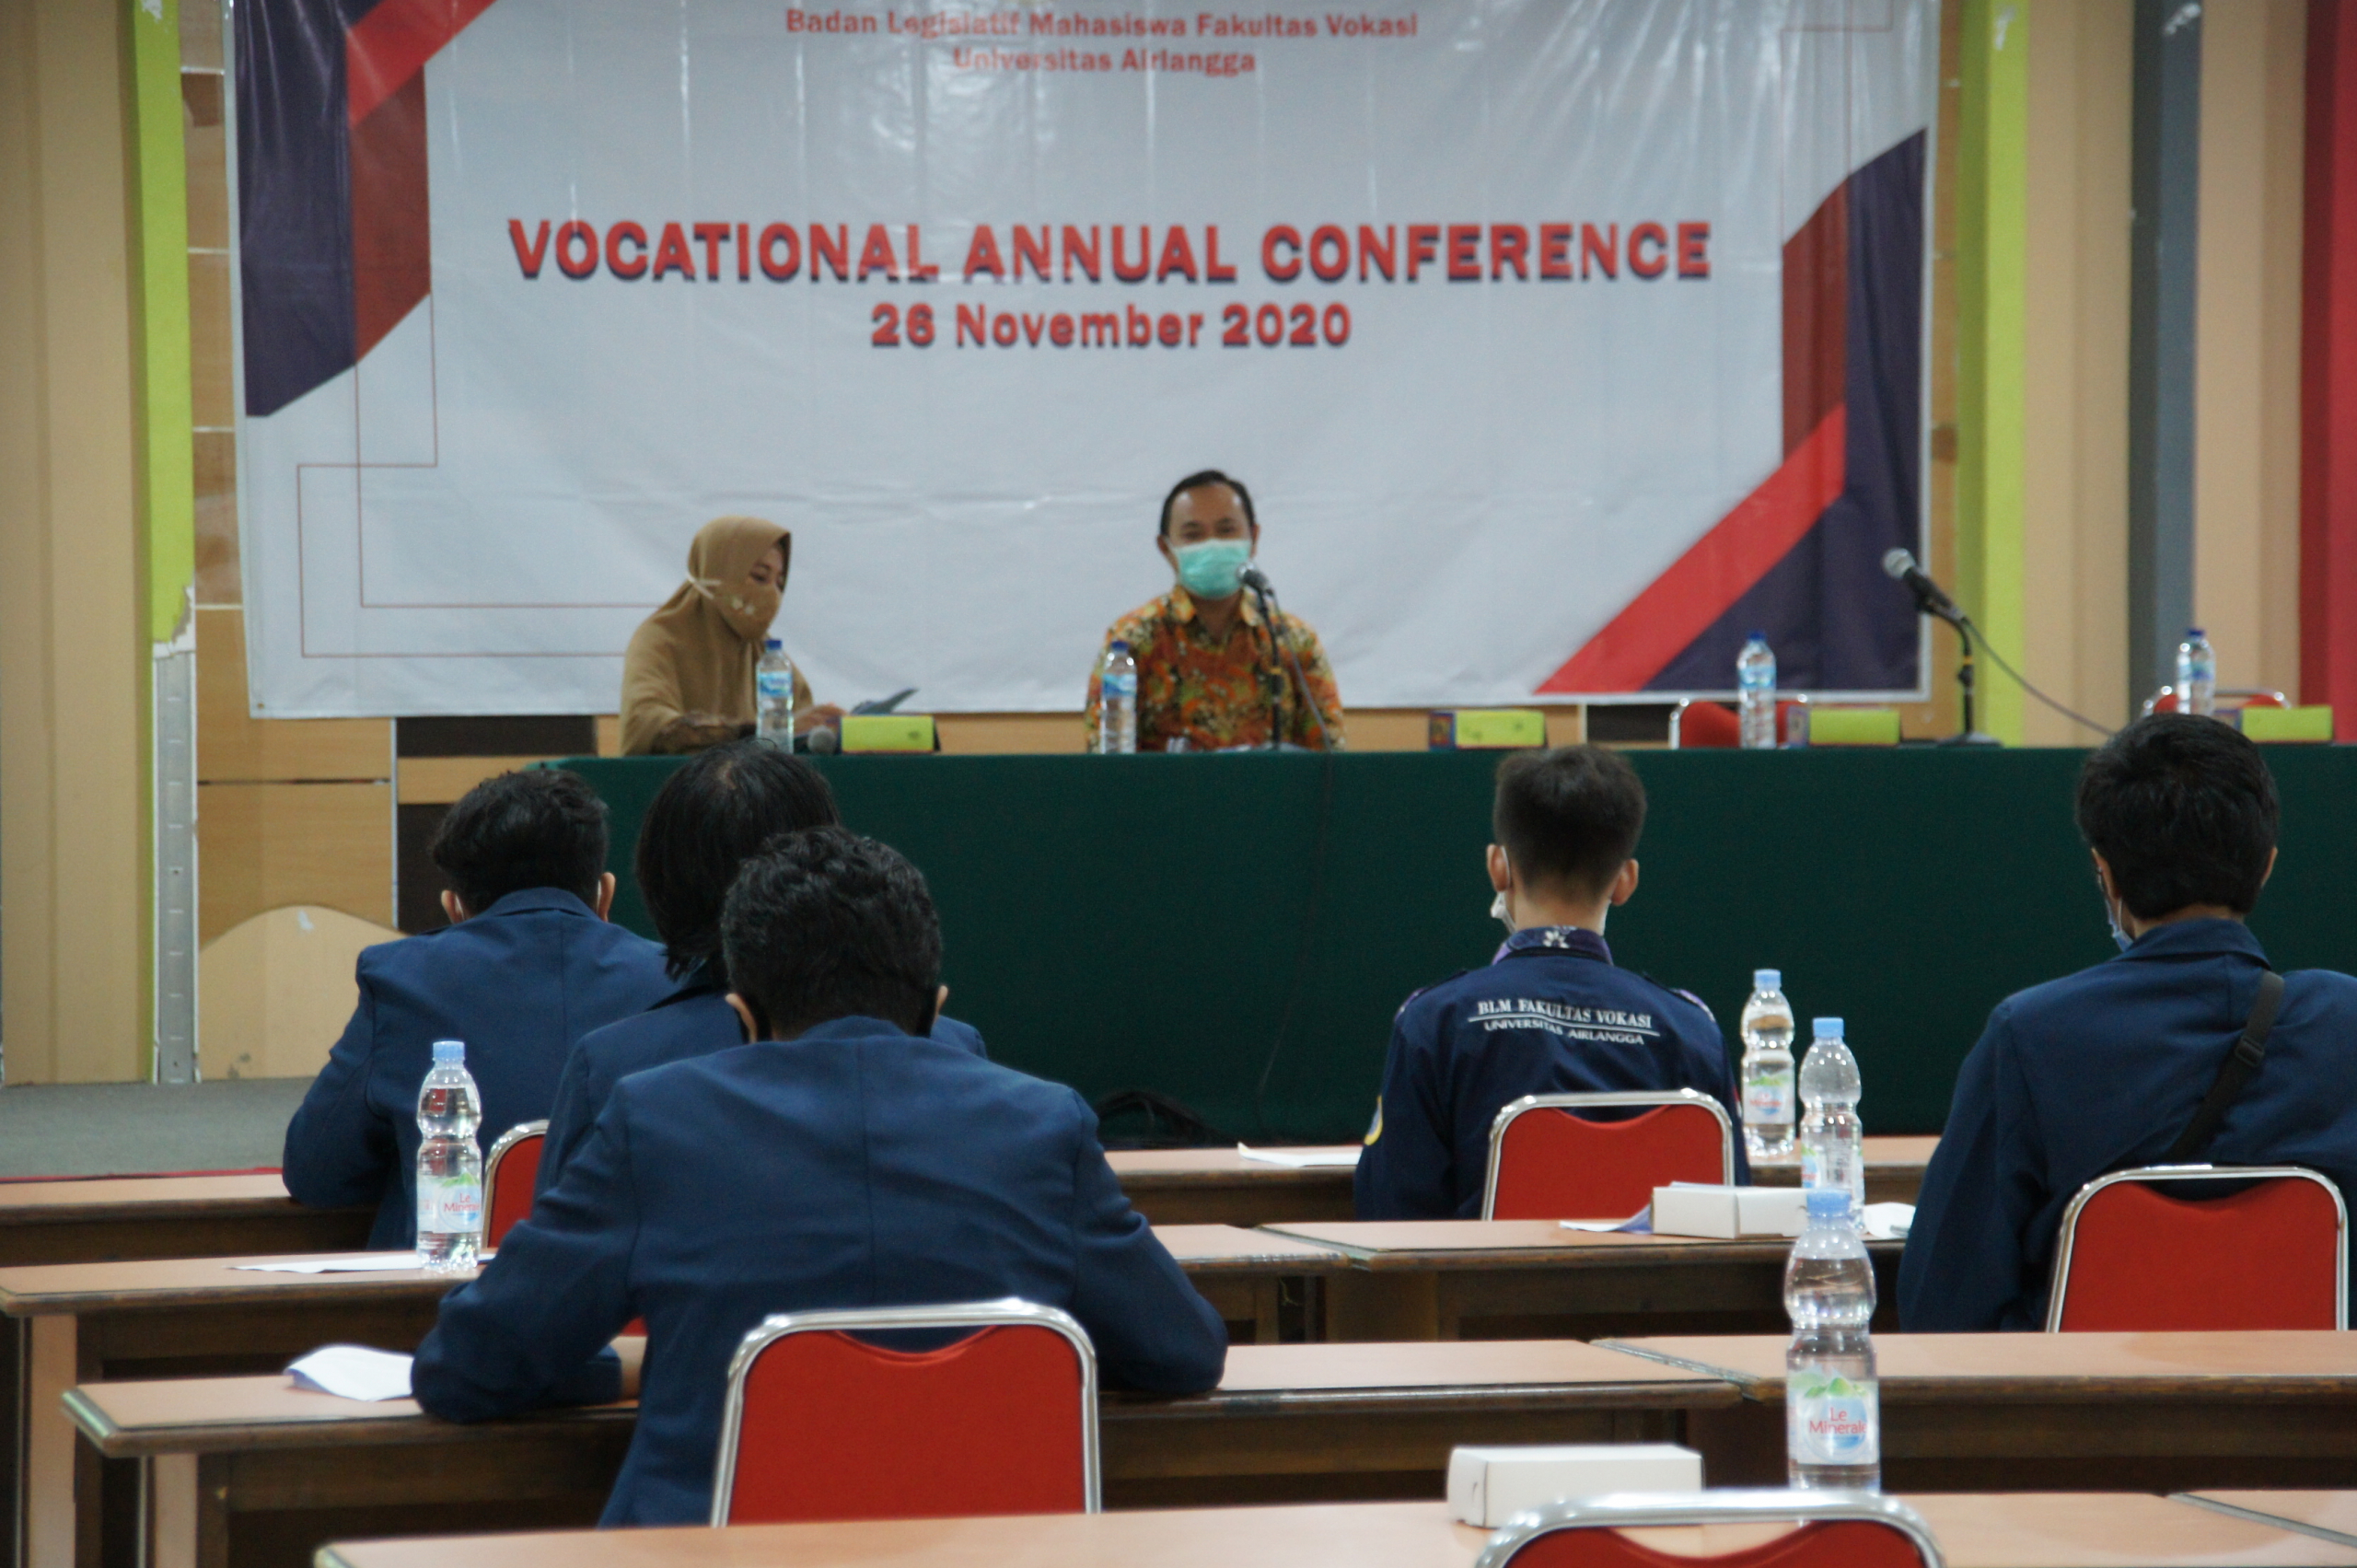 Badan Legislatif Mahasiwa Fakultas Vokasi Gelar Vocational Annual Conference